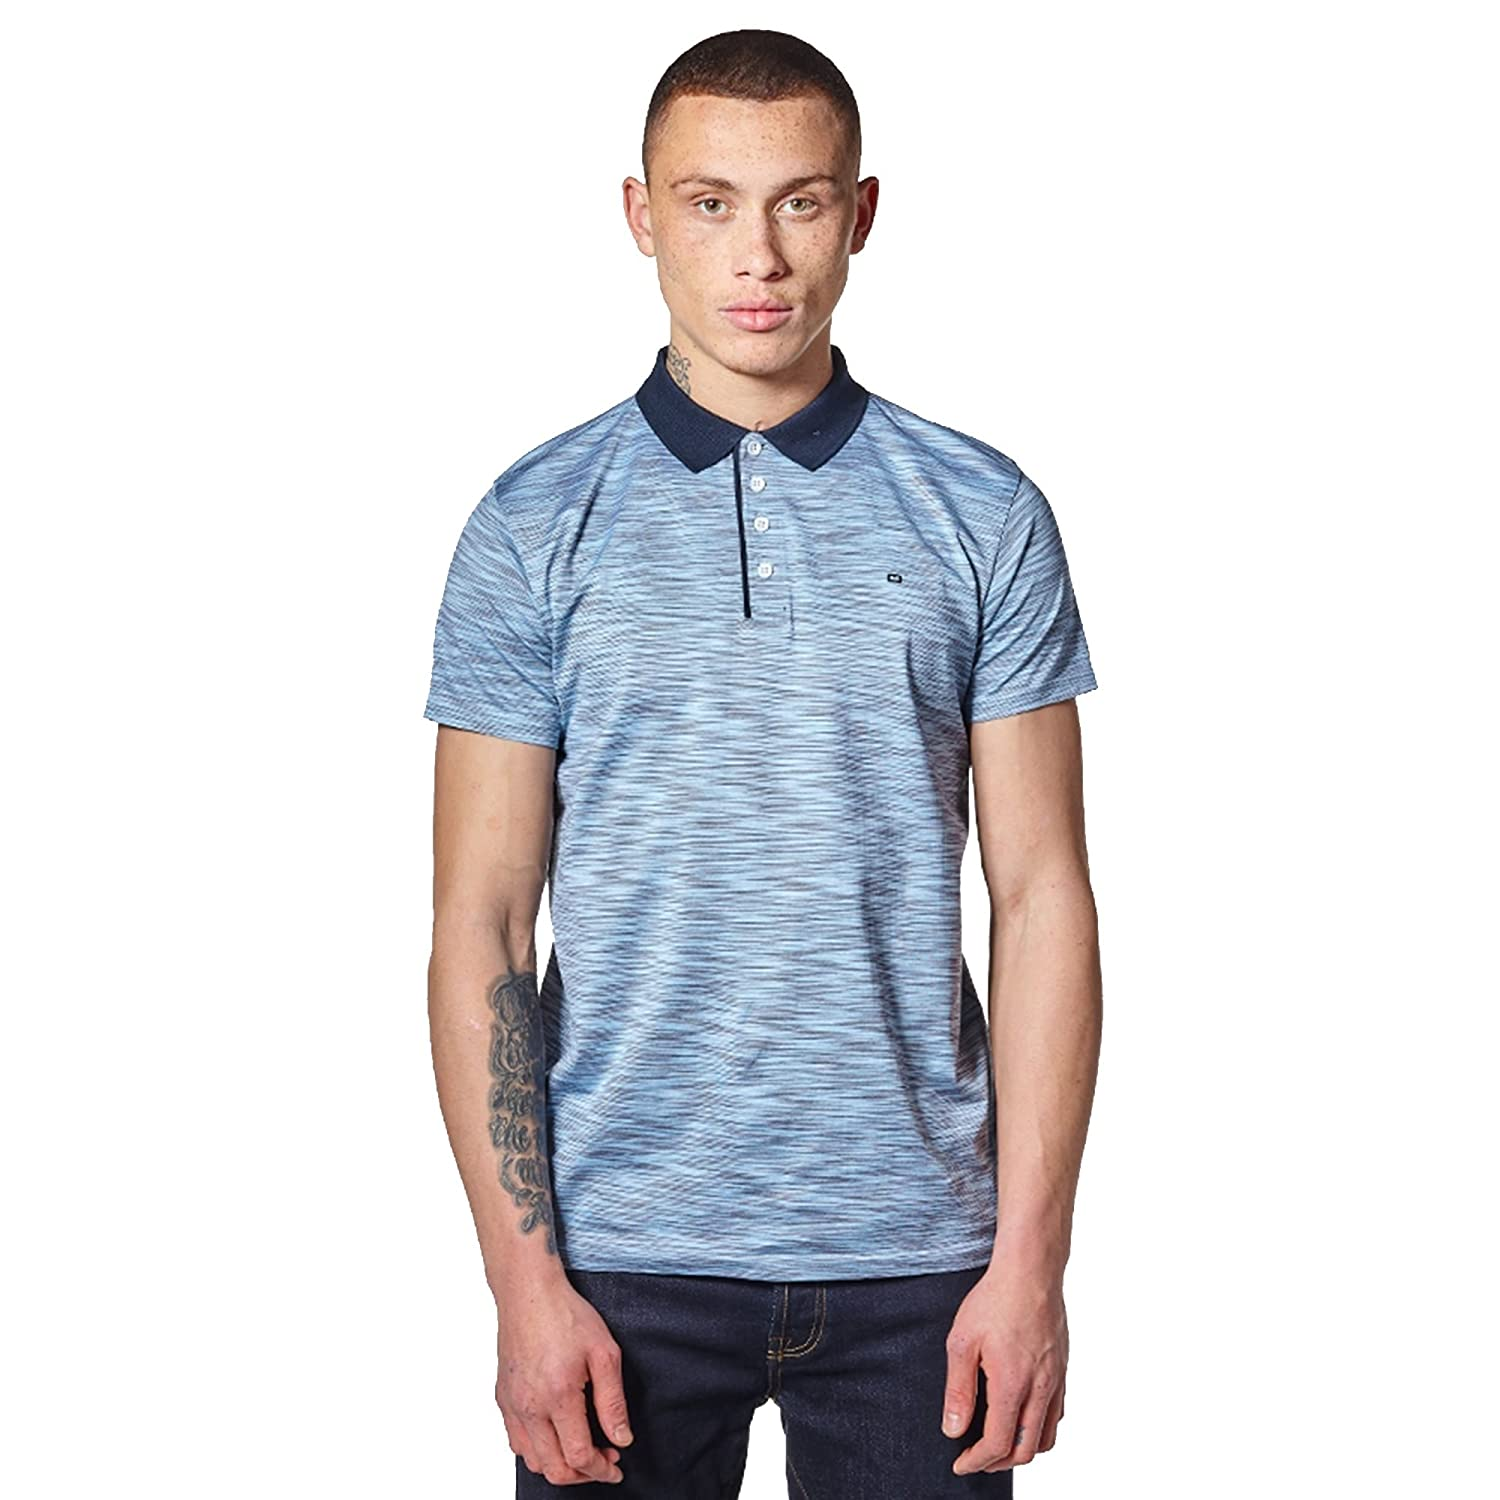 Weekend Offender Wharton 1802 - Polo de Manga Corta, Color Azul ...